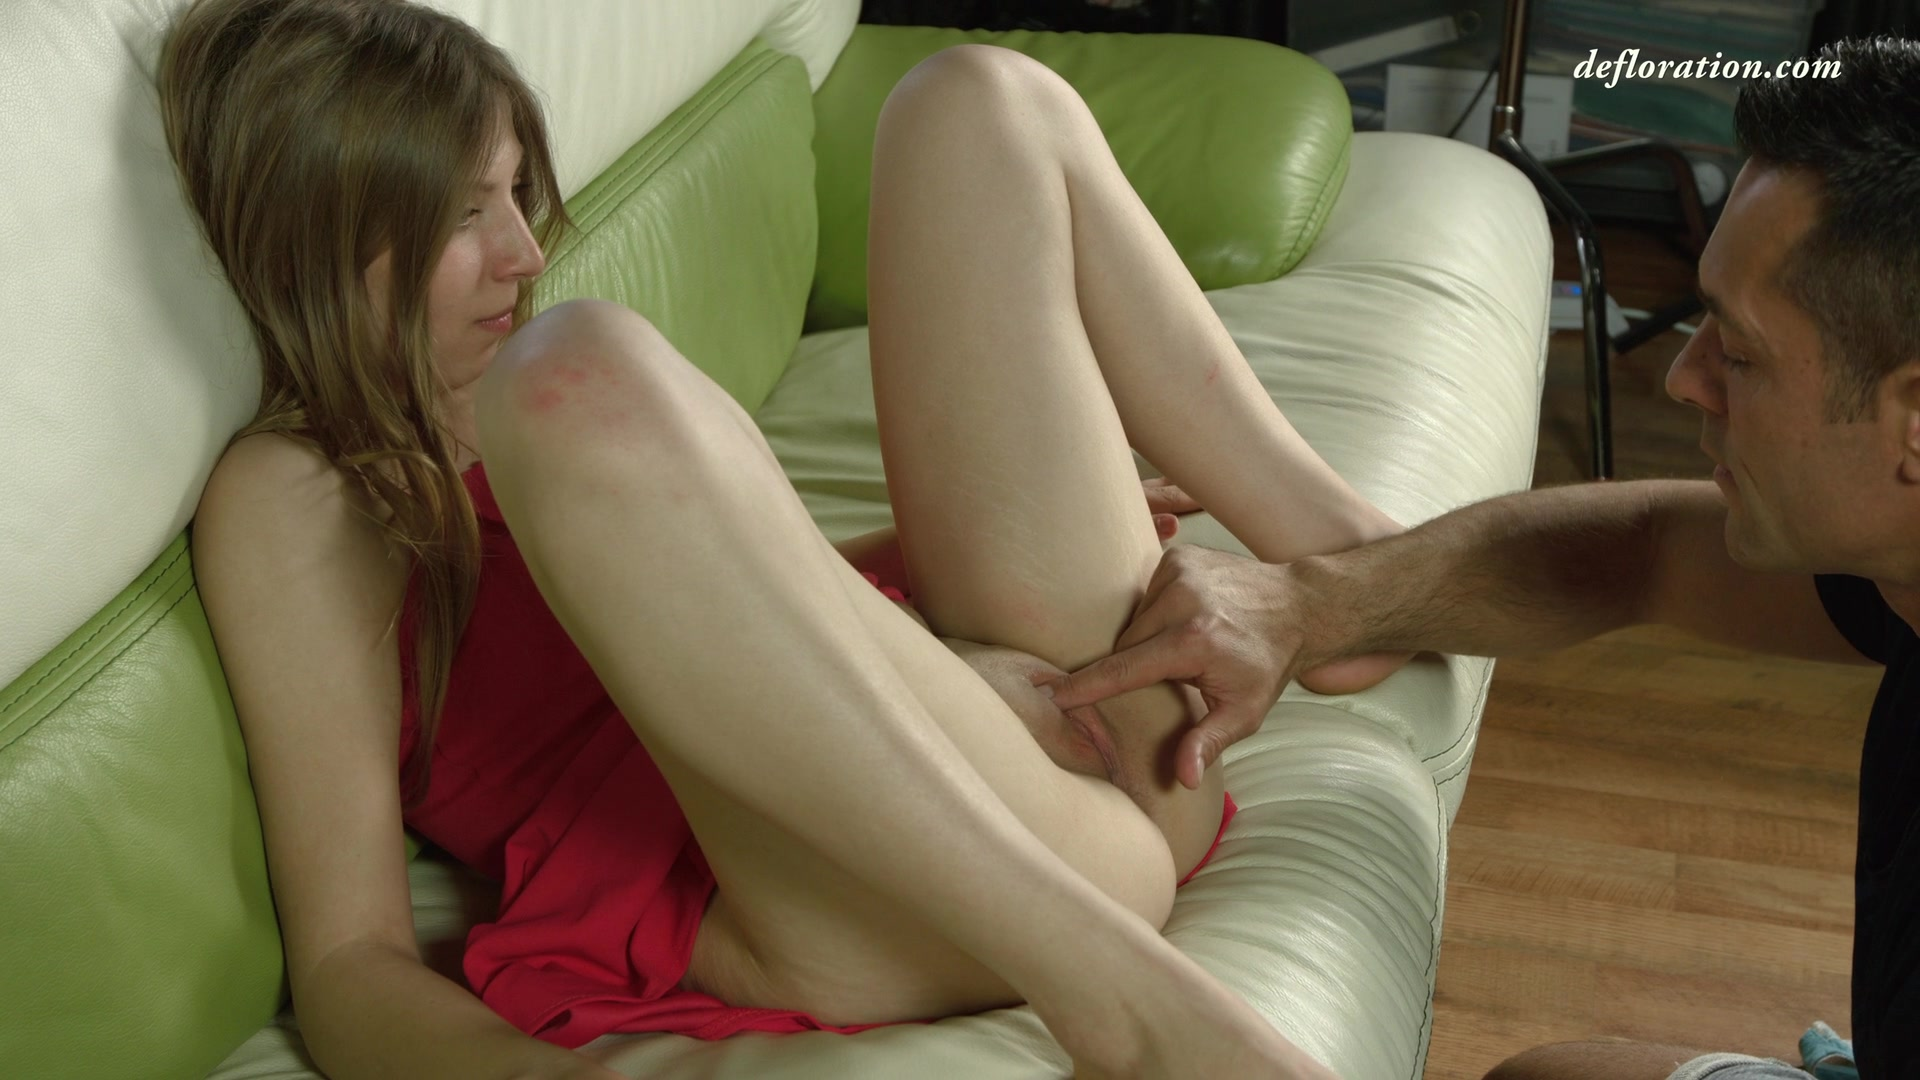 Russian girl defloration